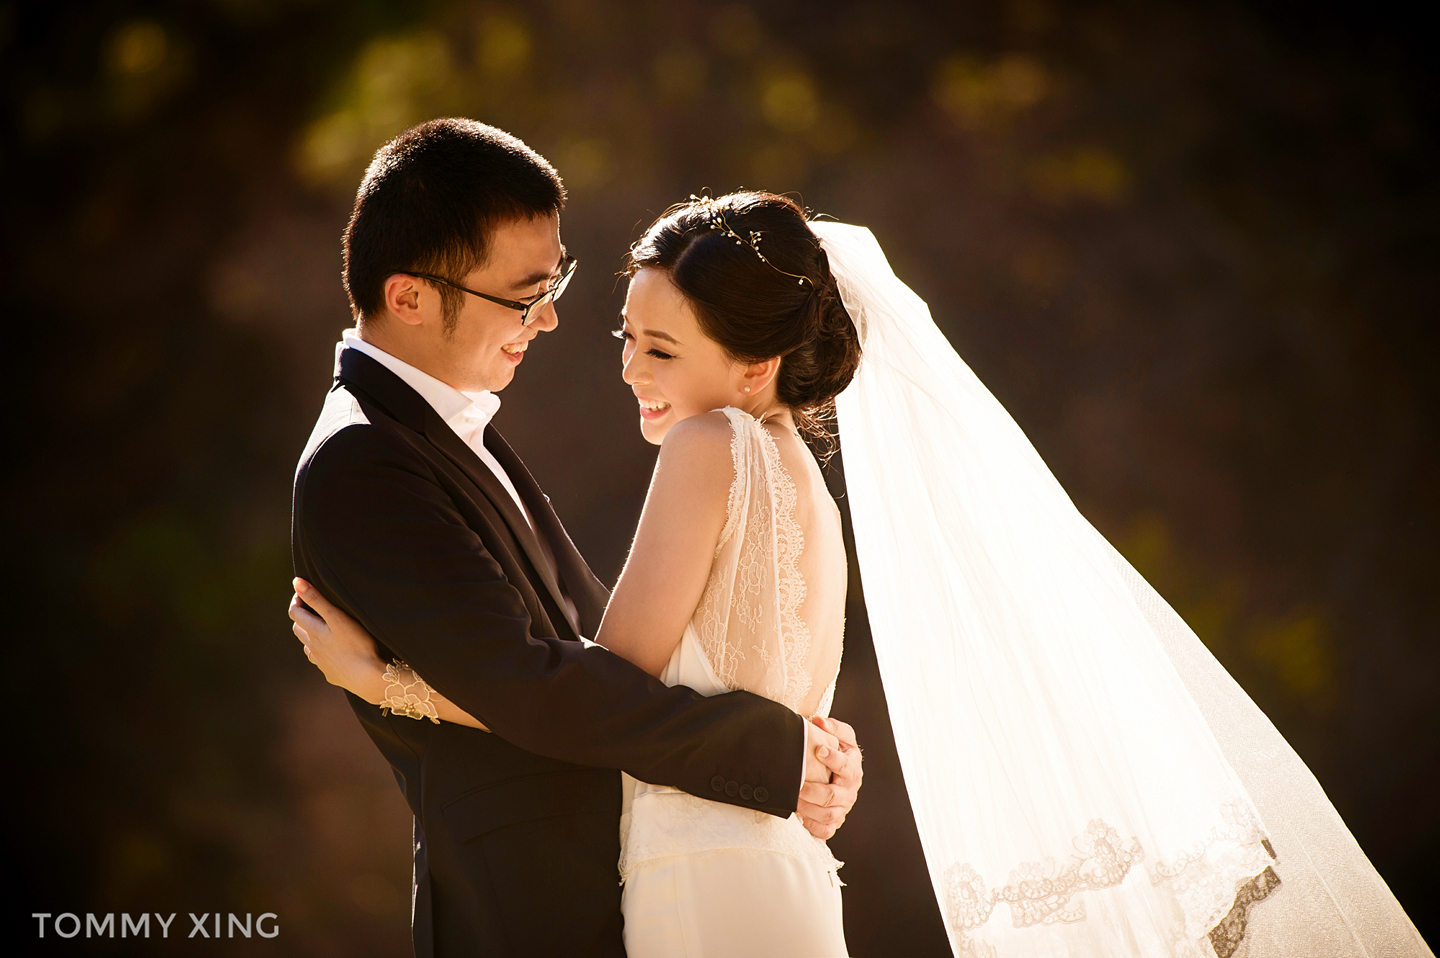 Los Angeles per-wedding 洛杉矶婚纱照 by Tommy Xing Photography 11.jpg